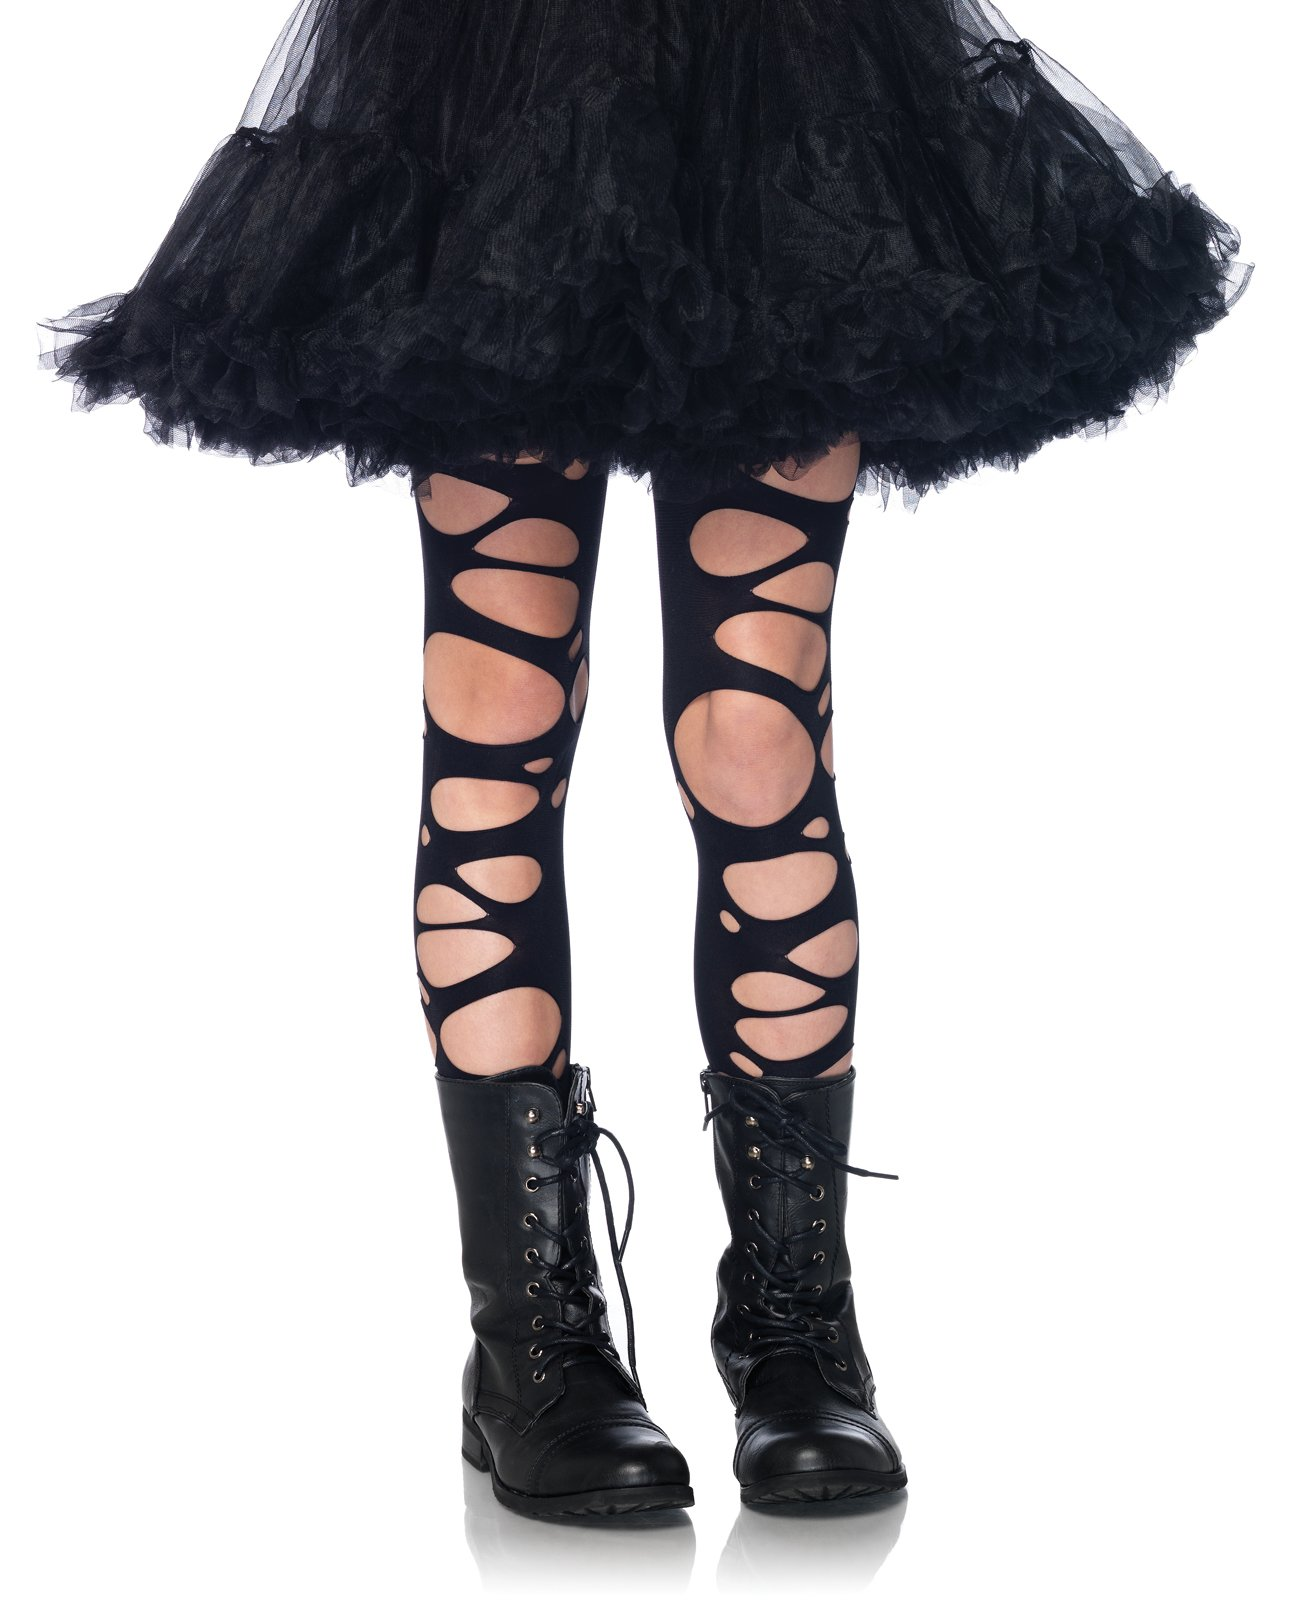 Tattered Child Tights